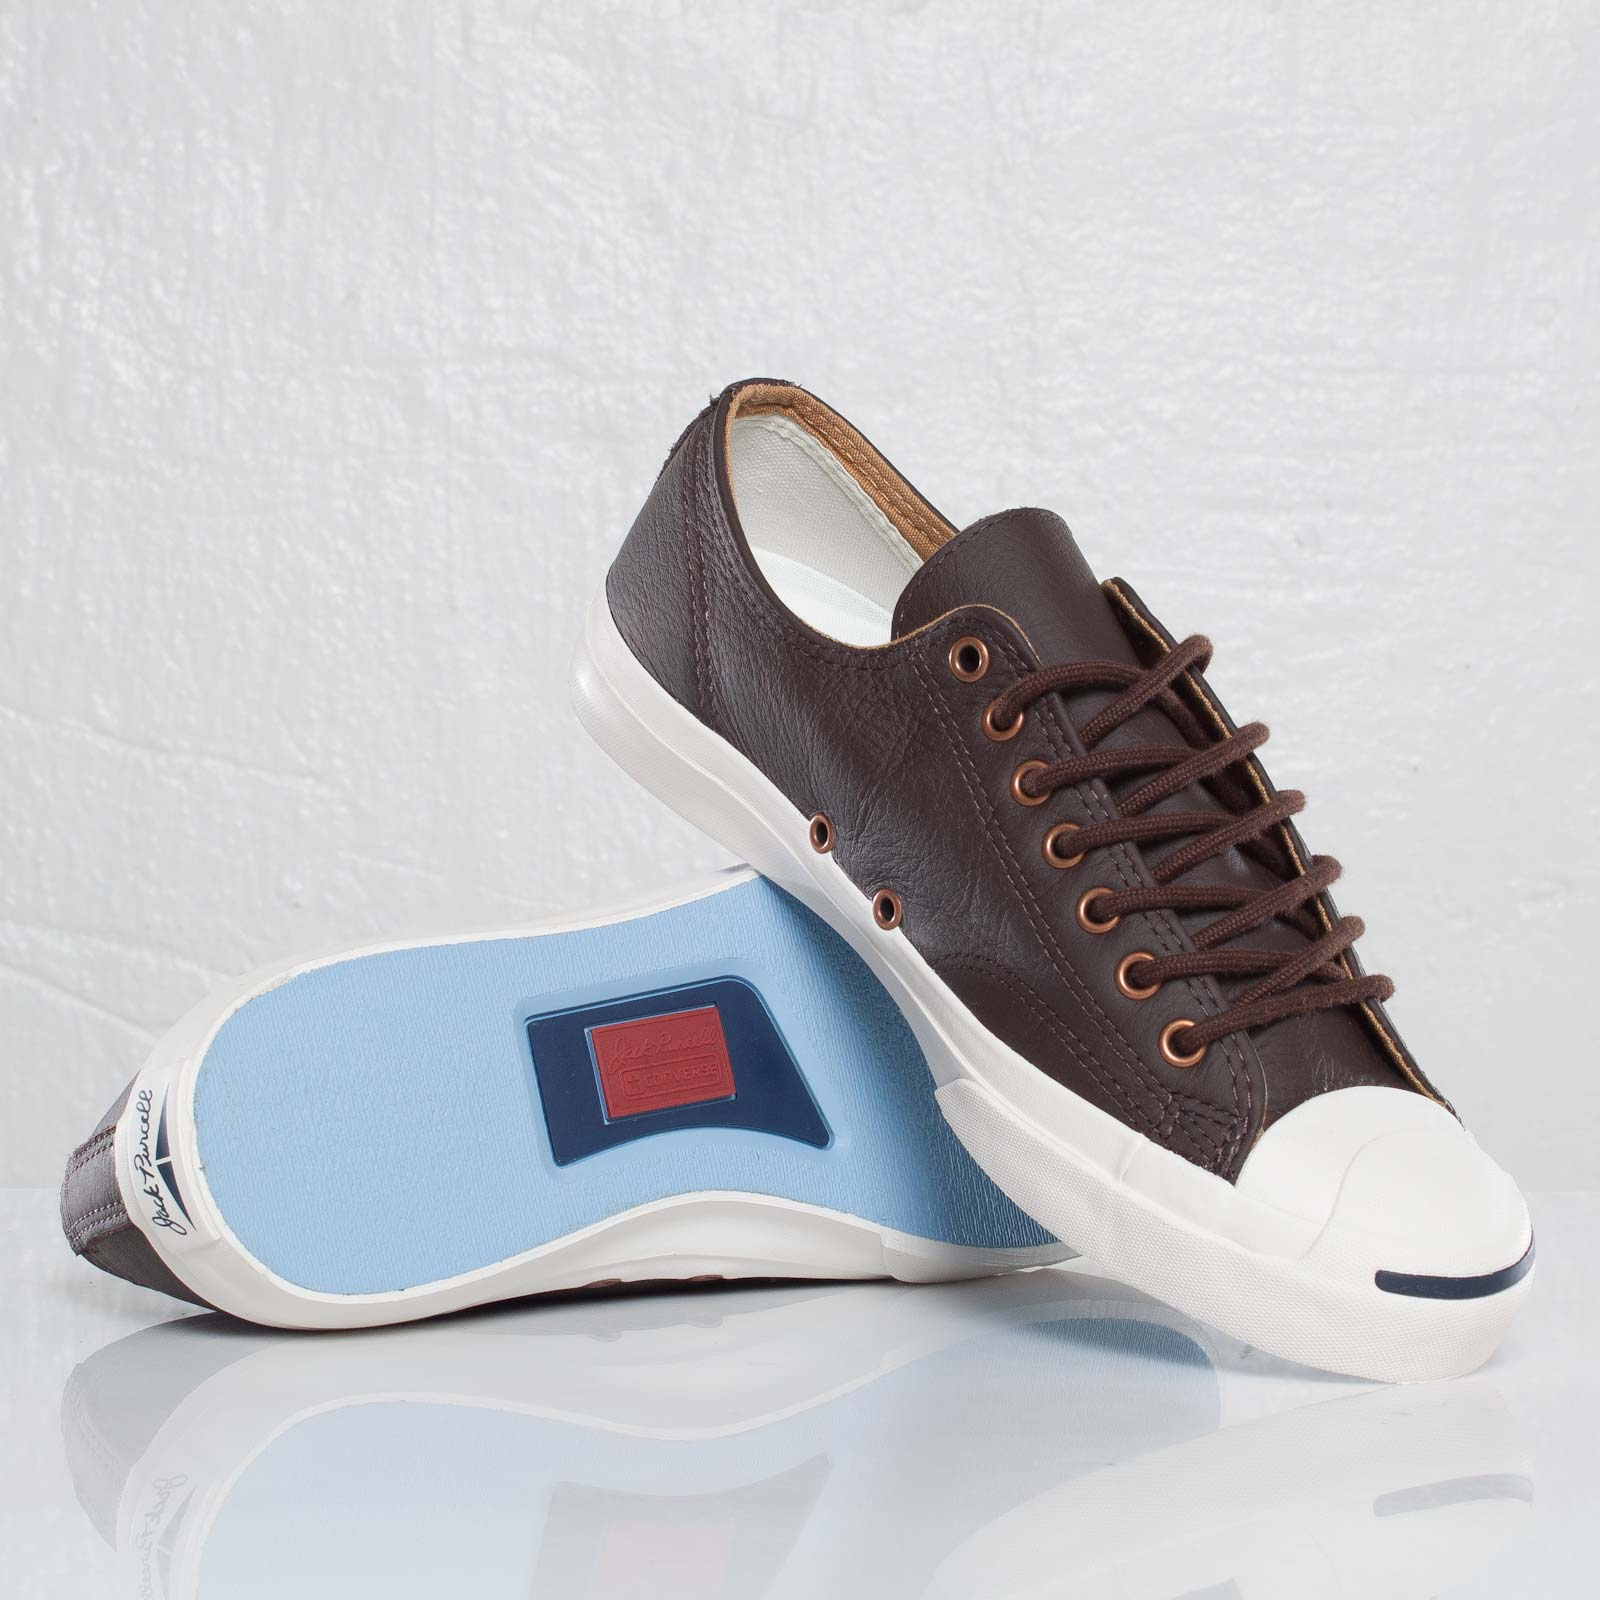 767824f1ad82 Converse Jack Purcell LTT Leather Ox - 110708 - Sneakersnstuff ...